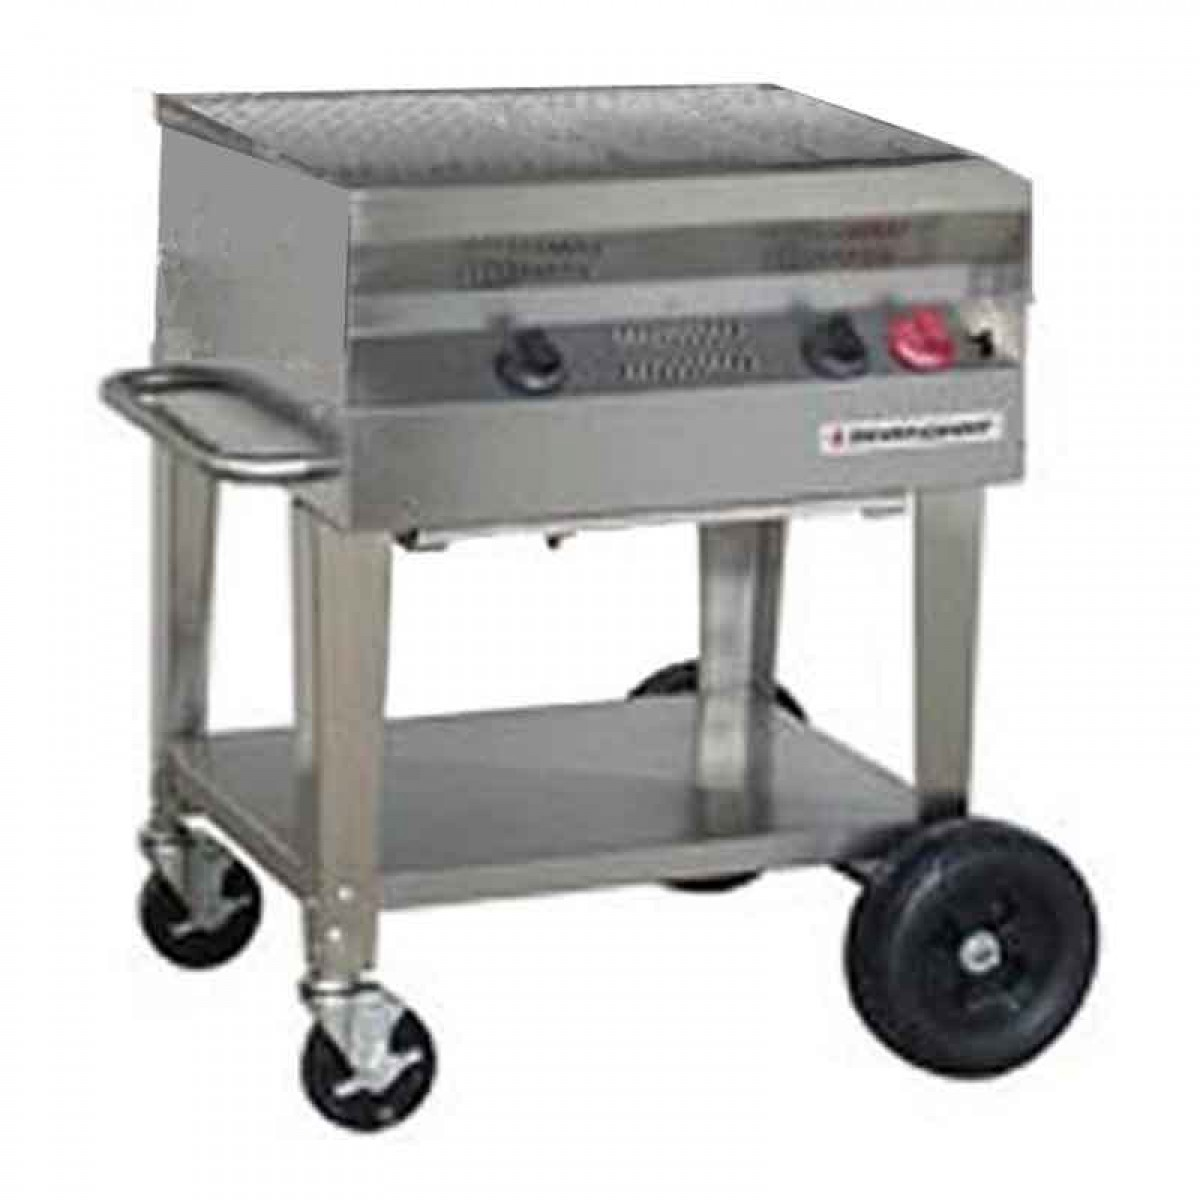 flagro silver giant 24 residential gas barbecue grill at ibuybarbecues. Black Bedroom Furniture Sets. Home Design Ideas